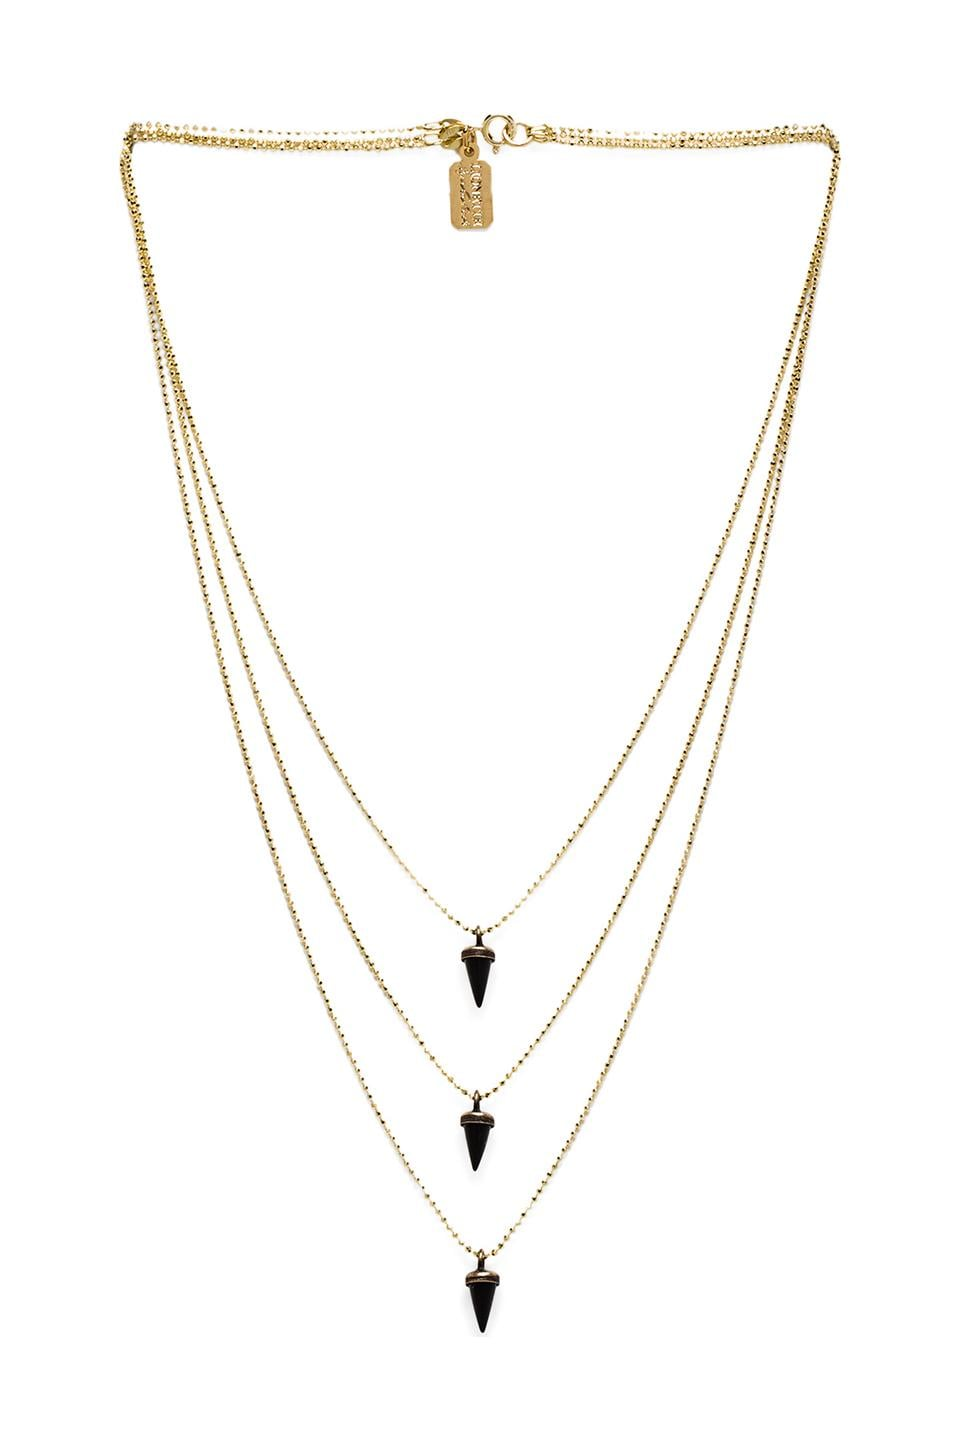 Lionette by Noa Sade Avish Necklace in Black